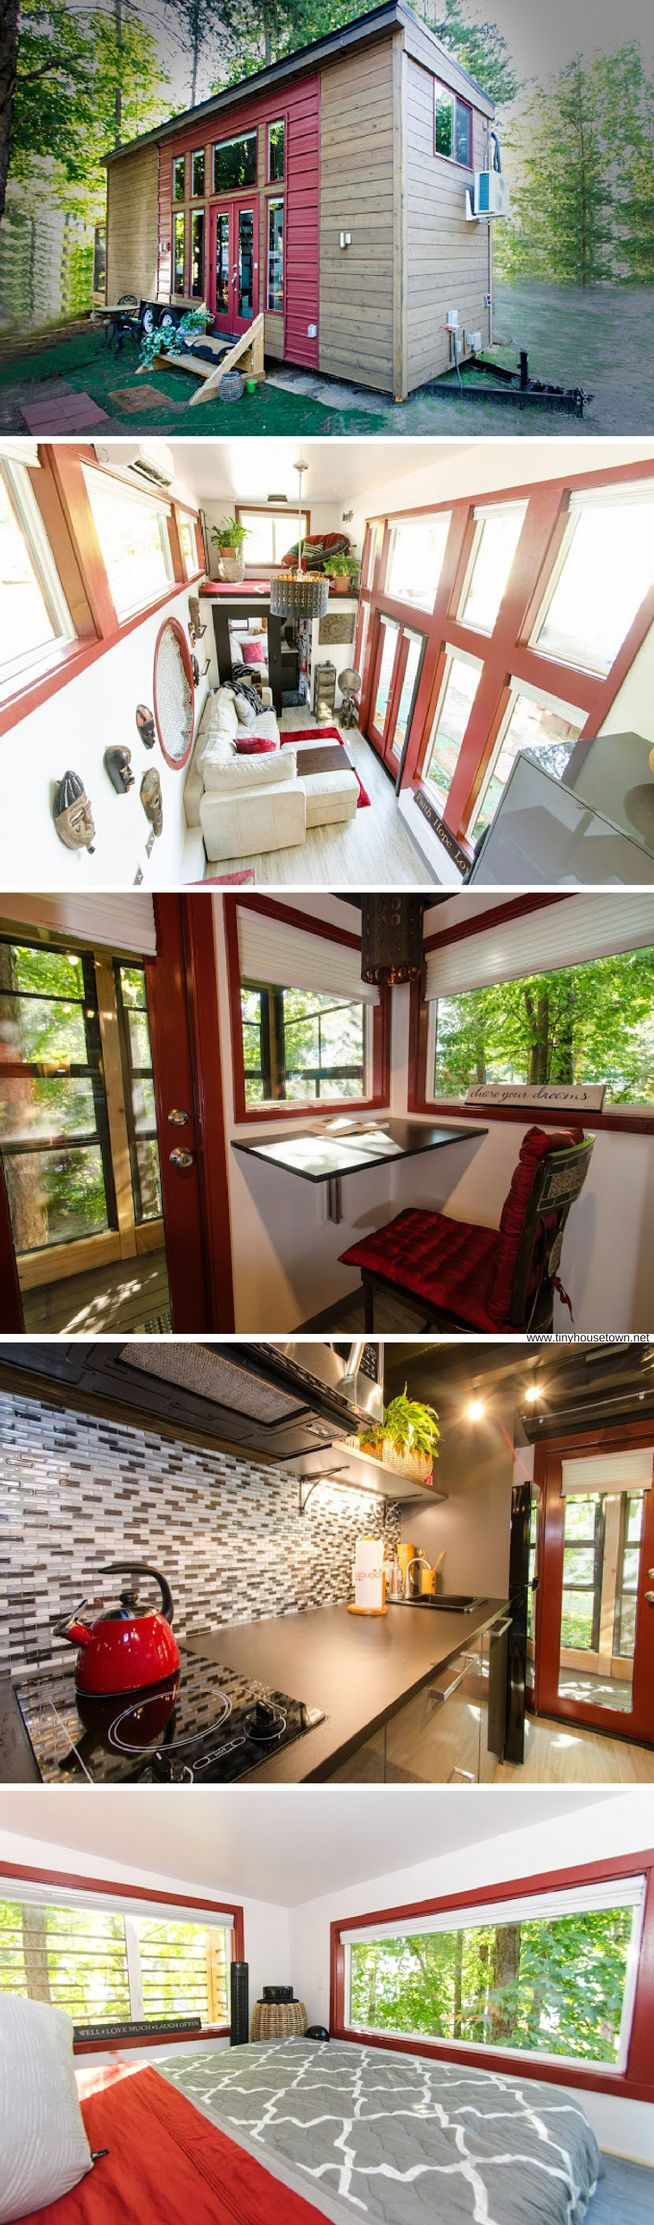 The Ms. Gypsy Soul tiny house